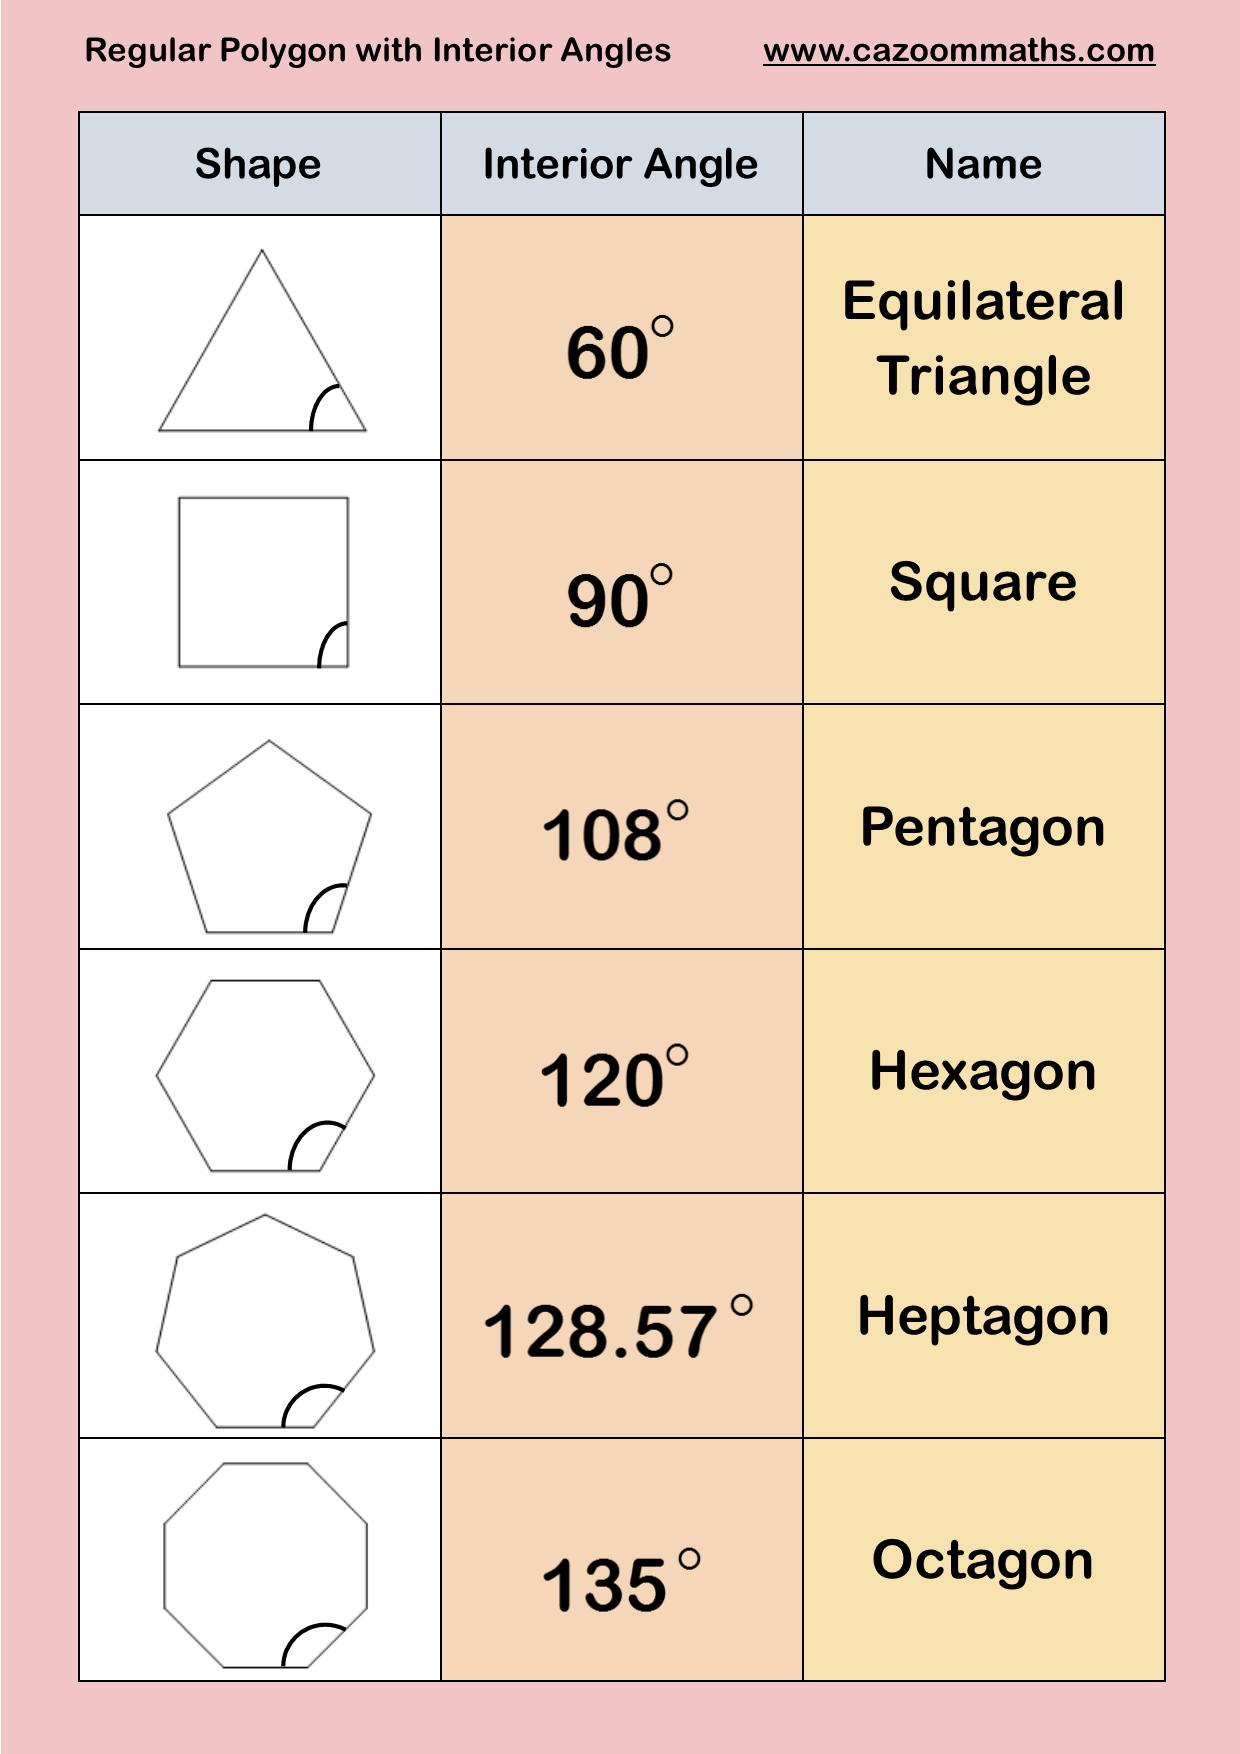 Regular Polygons With Interior Angles Regular Polygons Pinterest Regular Polygon Math